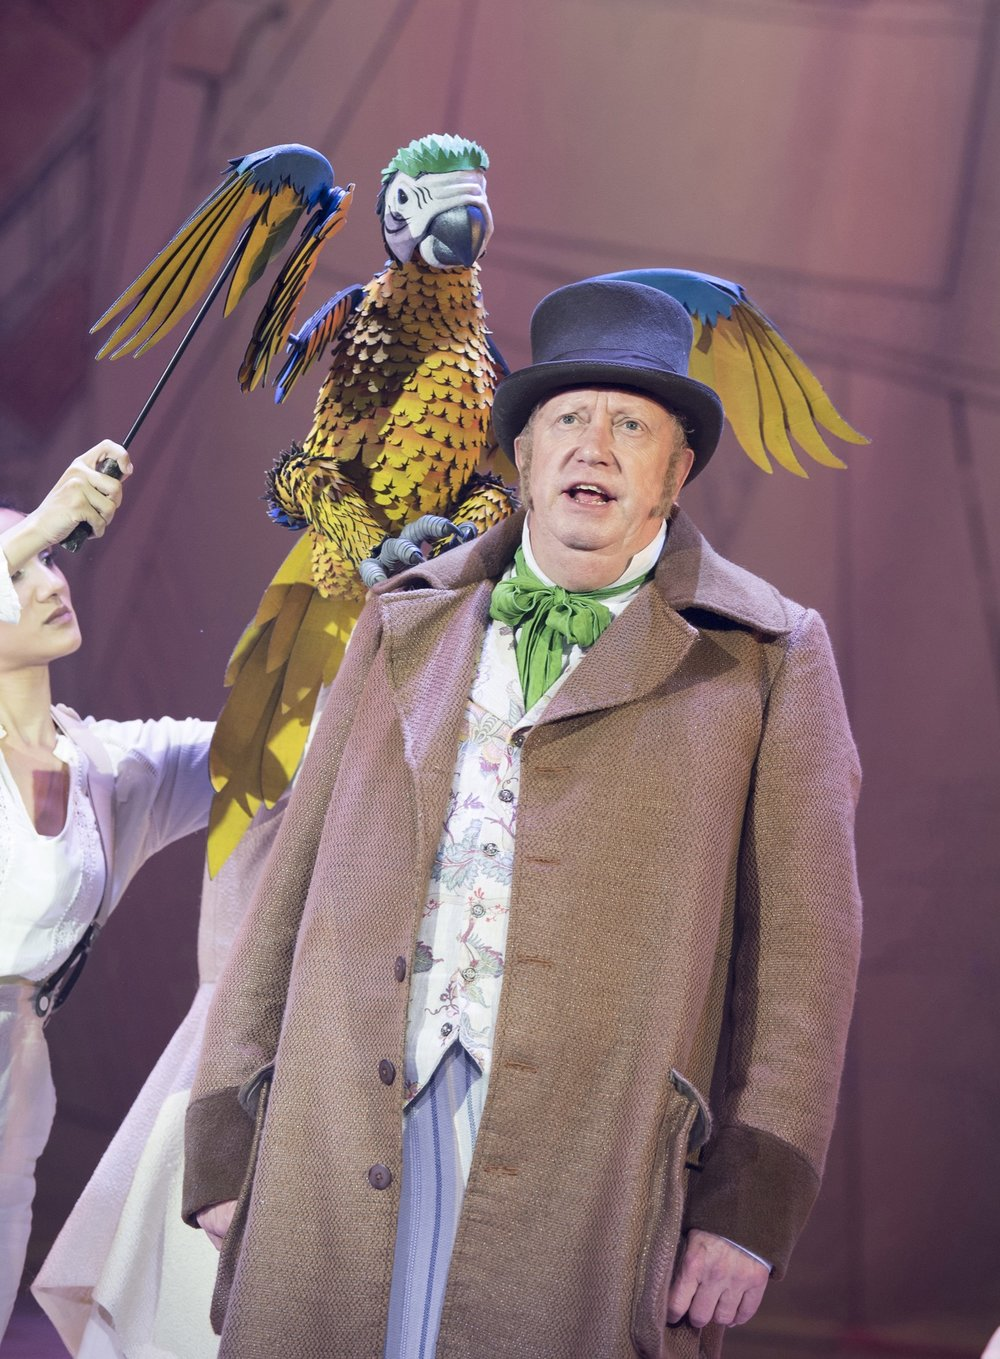 Mark_Williams_as_Doctor_Dolittle_with_Polynesia_the_Parrot_in_DOCTOR_DOLITTLE._Credit_Alastair_Muir_(3).jpg